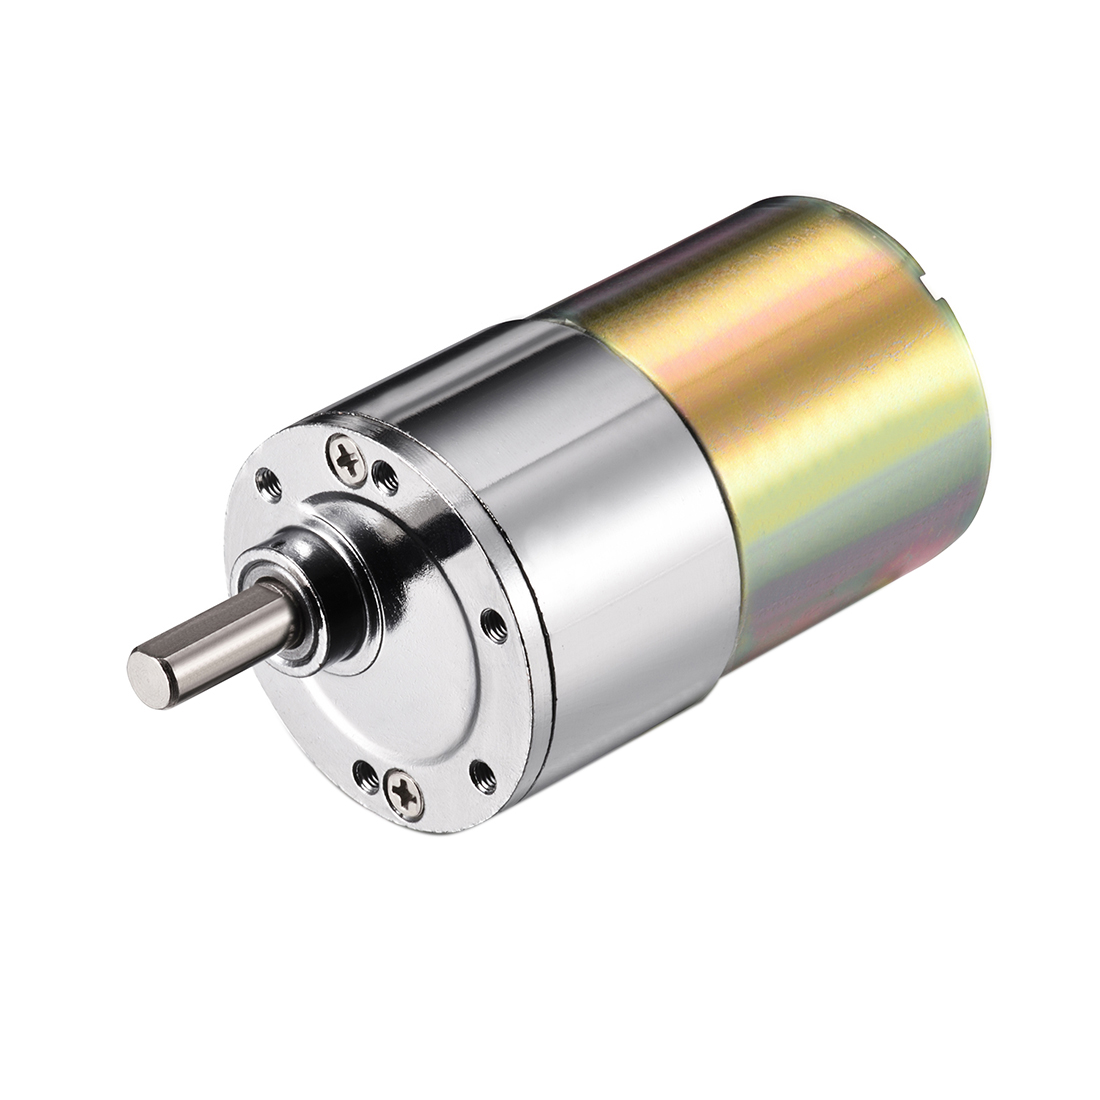 DC 24V 15RPM Micro Gear Box Motor Speed Reduction Electric Gearbox Eccentric Output Shaft